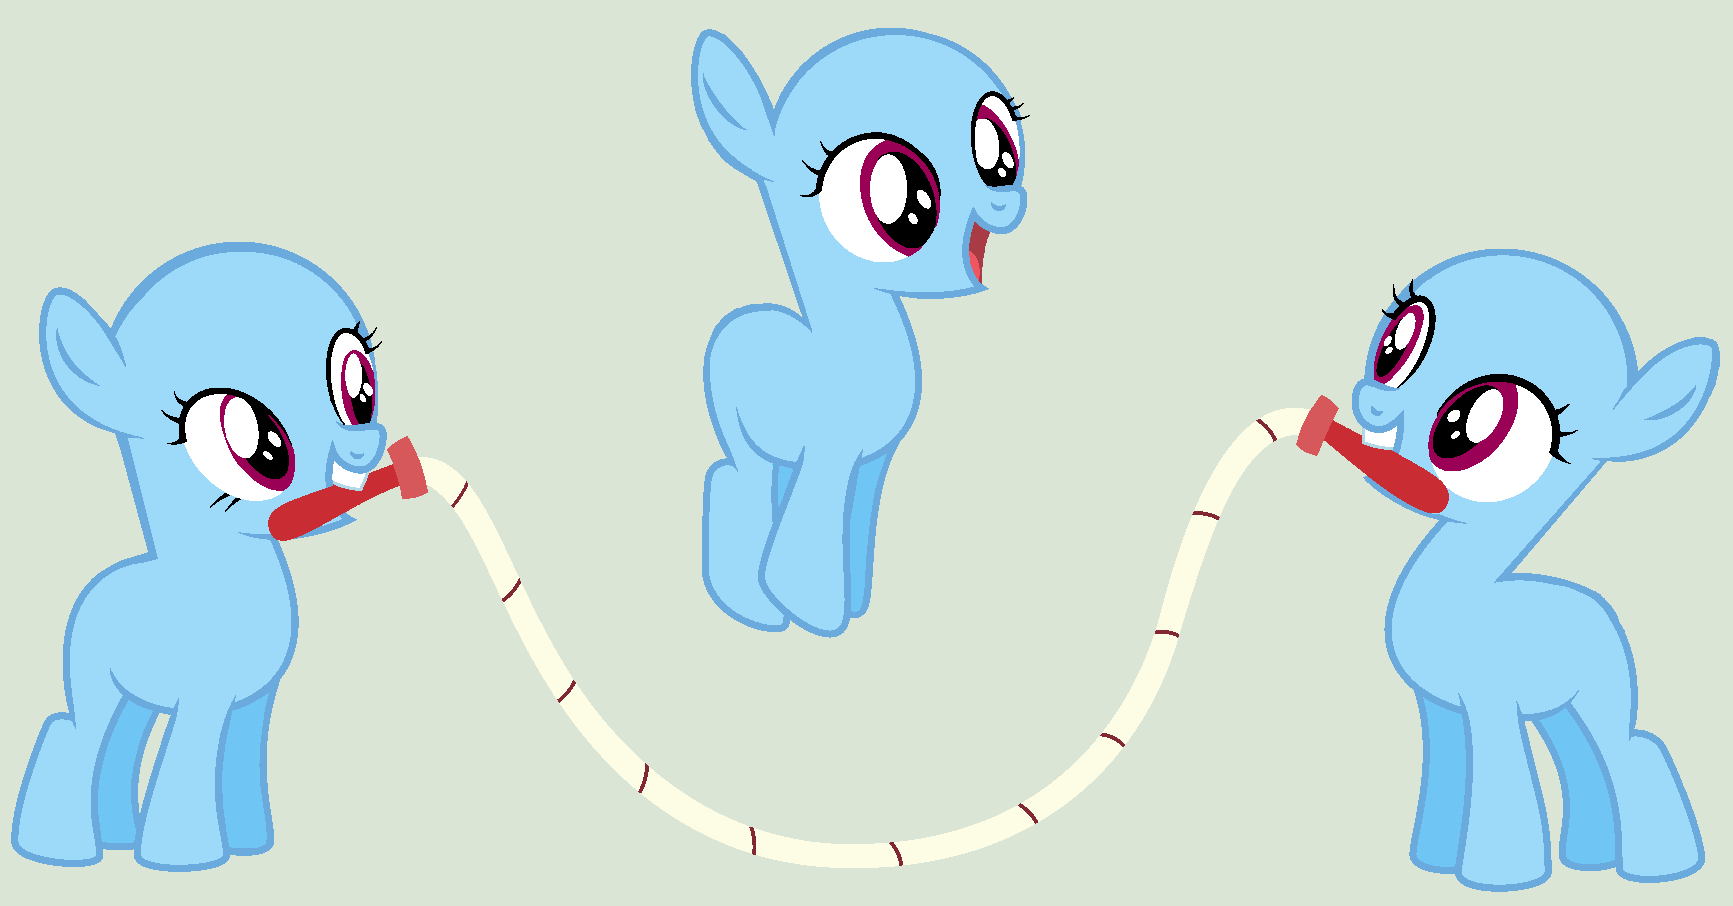 MLP Base - Jump rope! by TheTeChNoCaT on DeviantArt